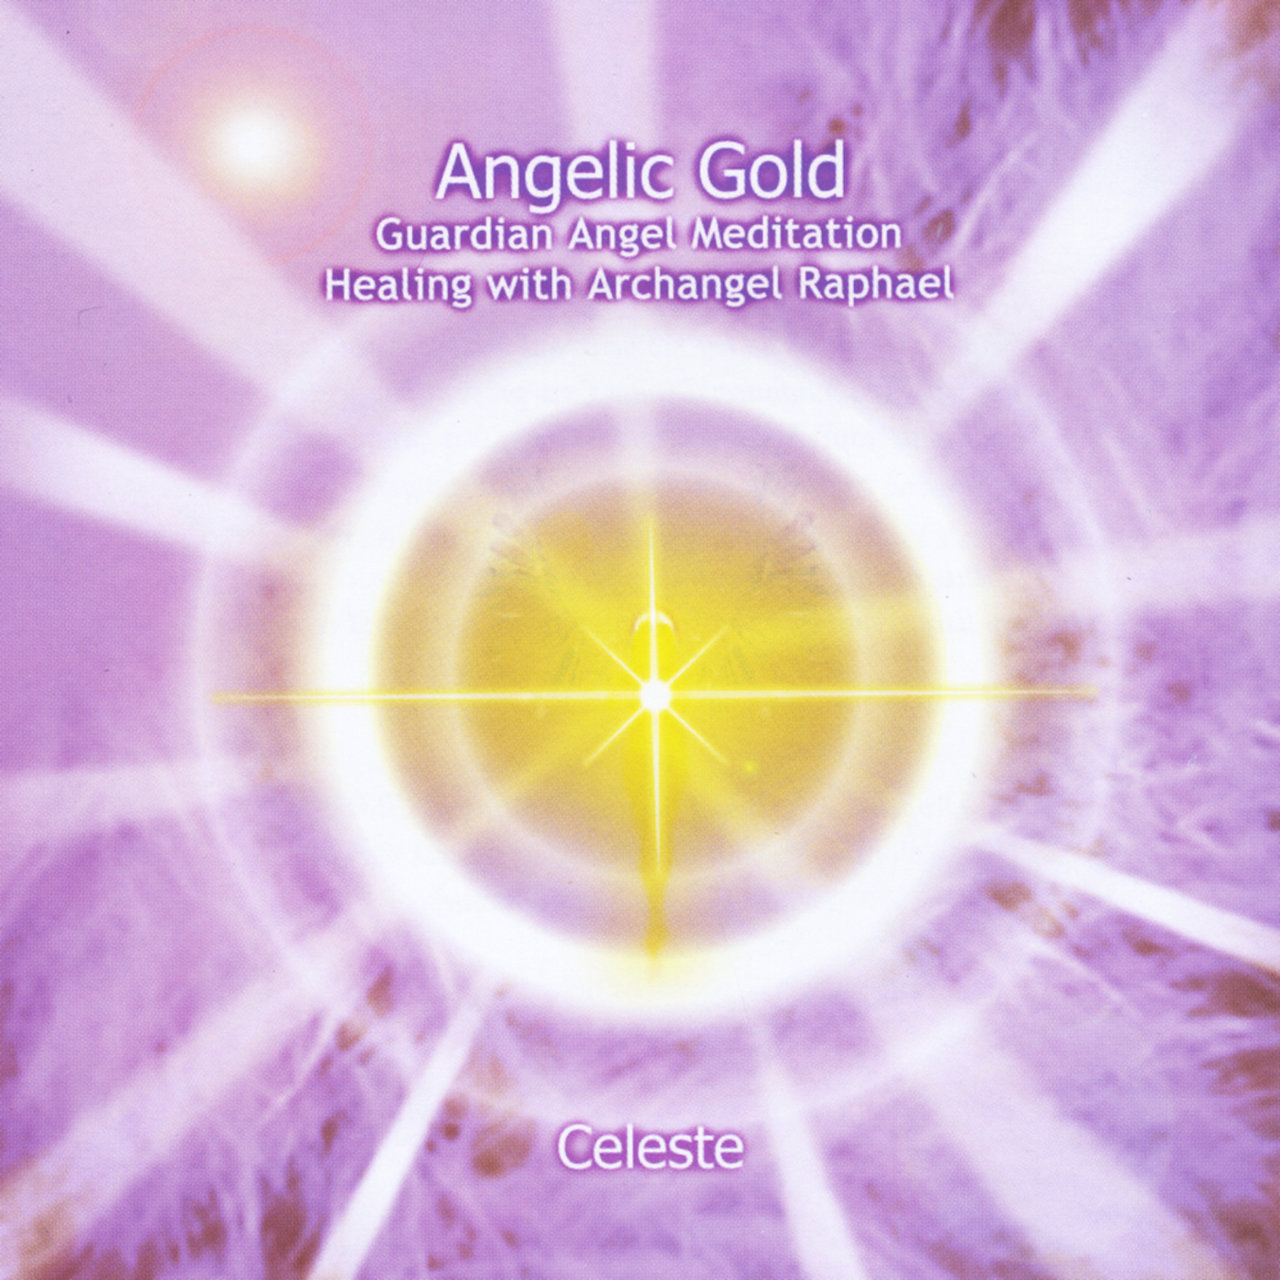 Angelic Gold